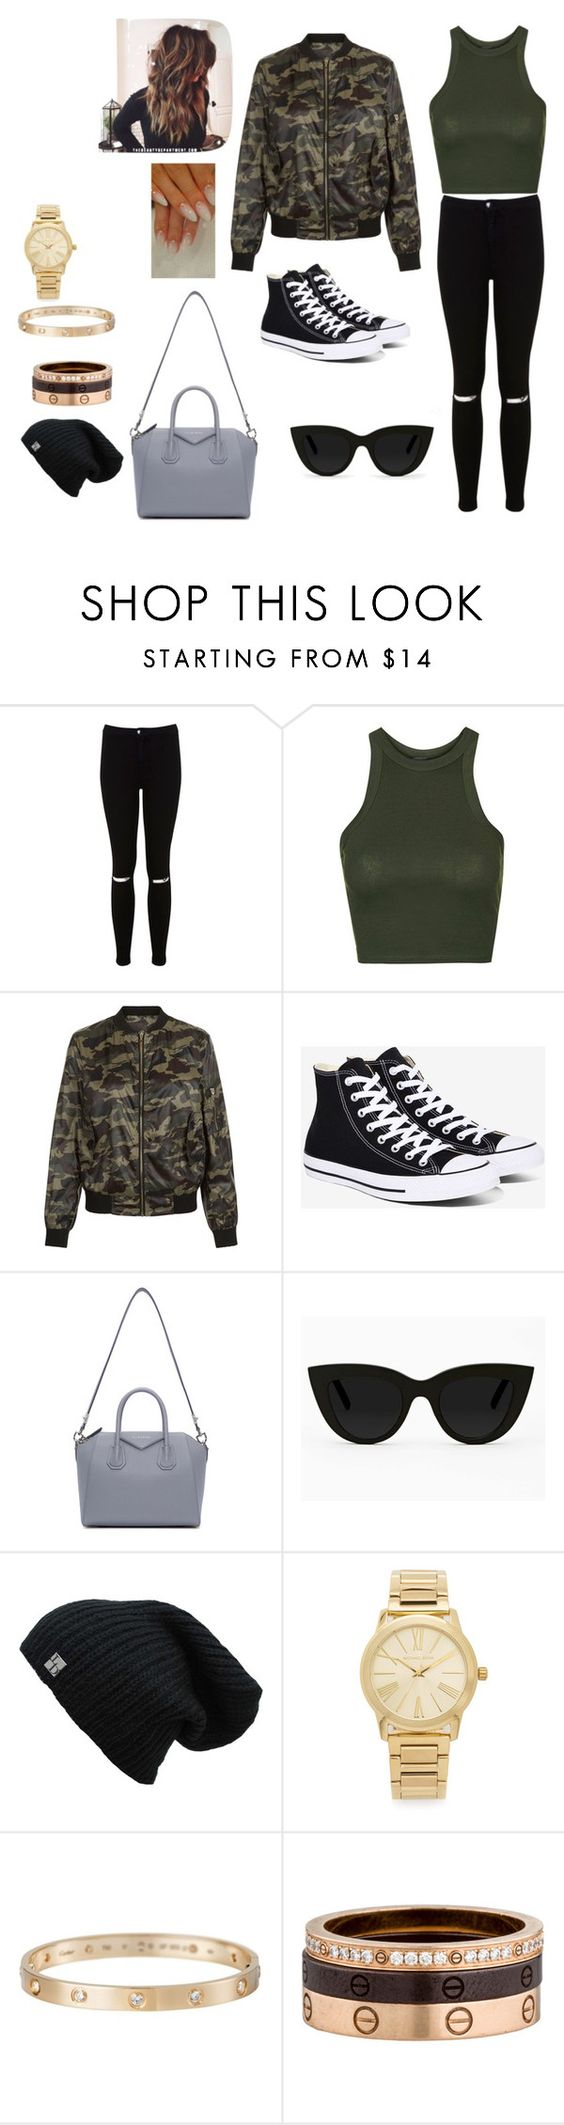 """la look"" by shania-collier on Polyvore featuring Miss Selfridge, Topshop, New Look, Converse, Givenchy, Quay, Michael Kors and Cartier"